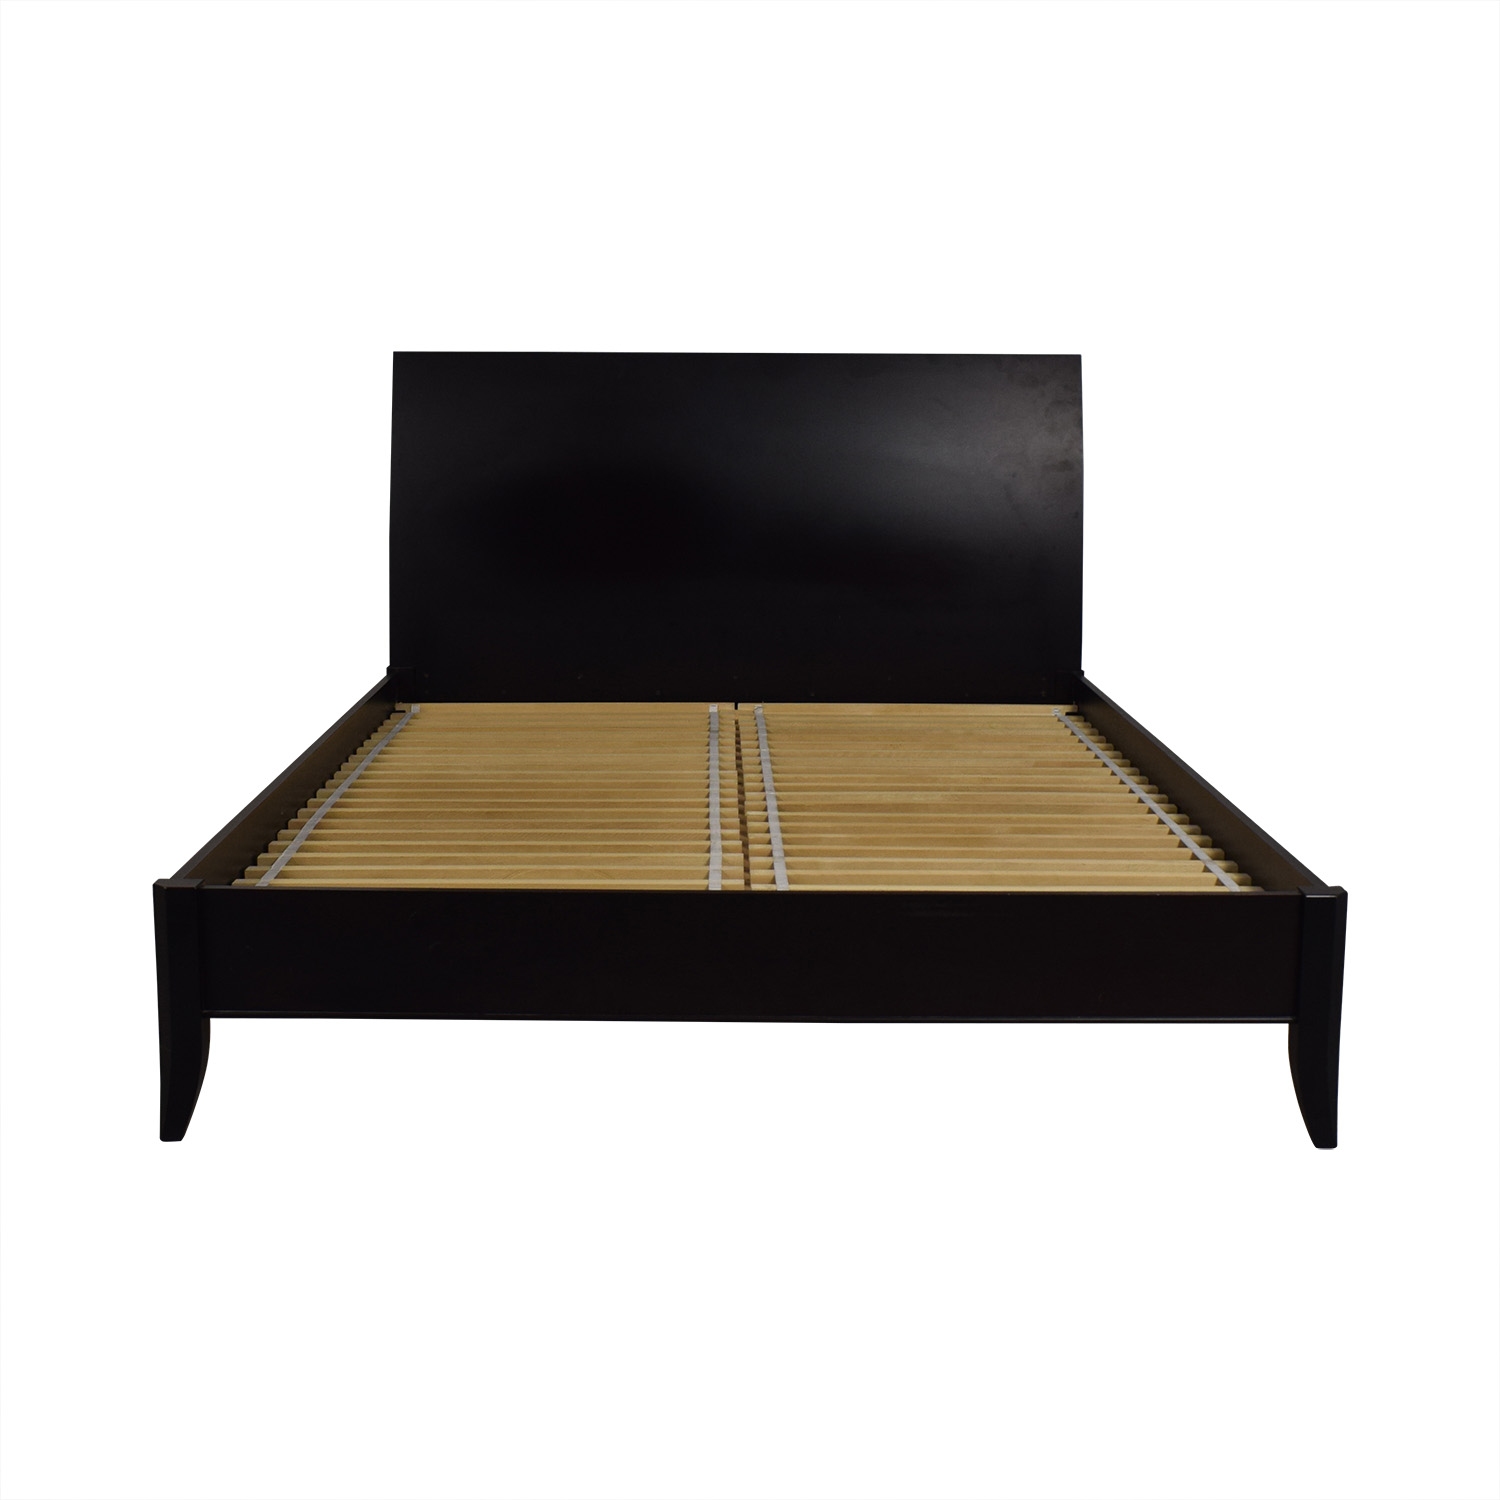 Crate & Barrel Crate & Barrel Platform Queen Bed Frame Bed Frames